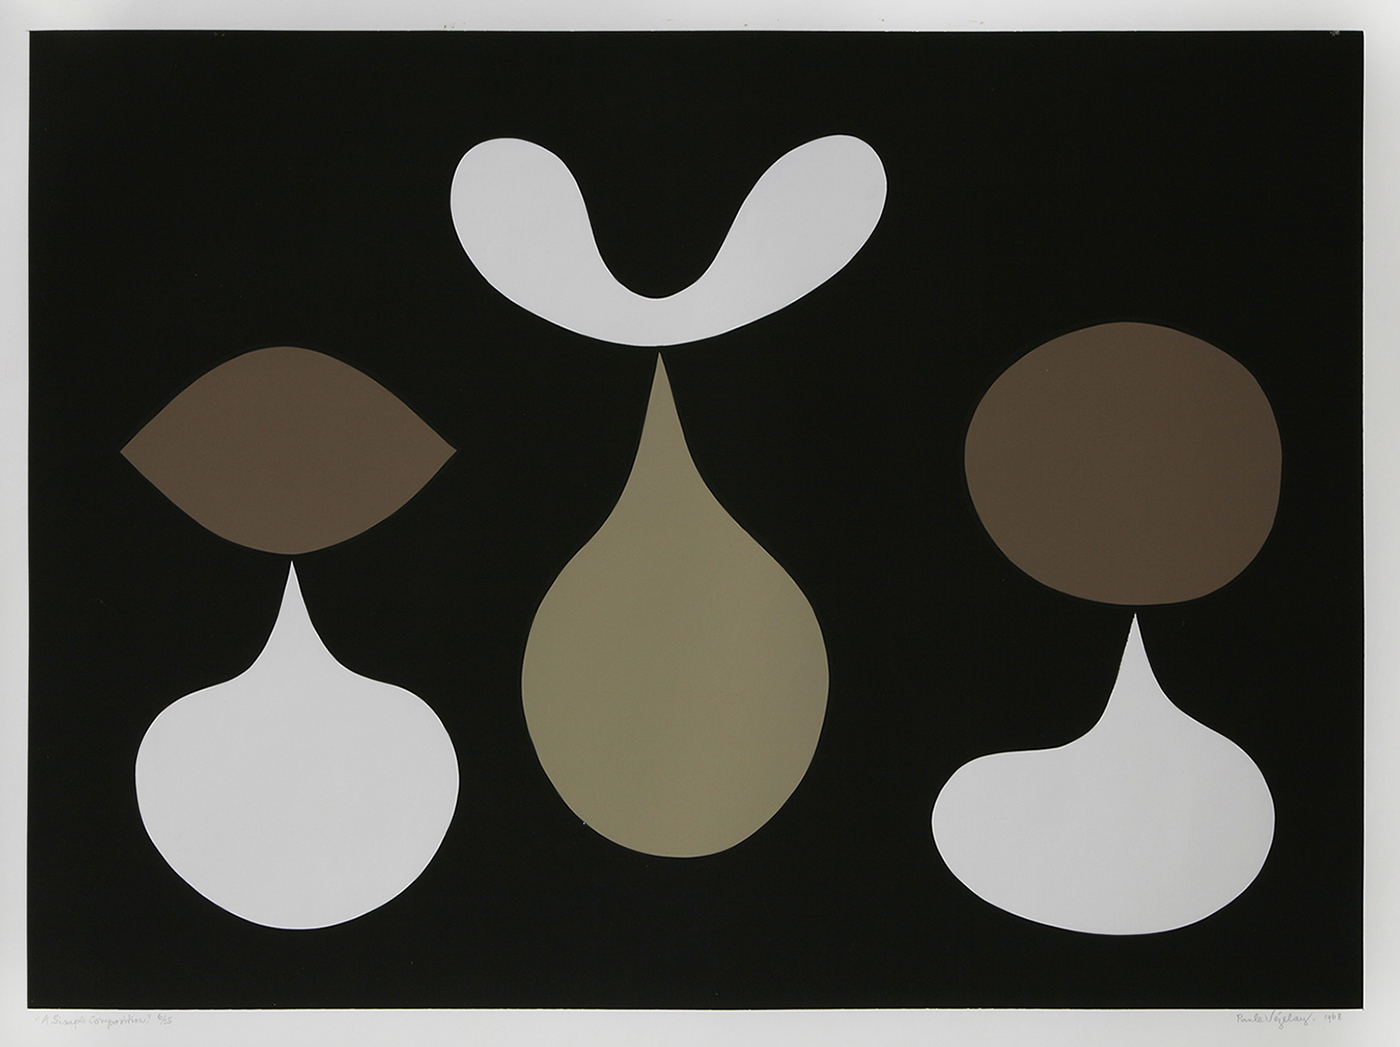 Paule Vézelay, A Simple Composition, 1968. Courtesy of England & Co.